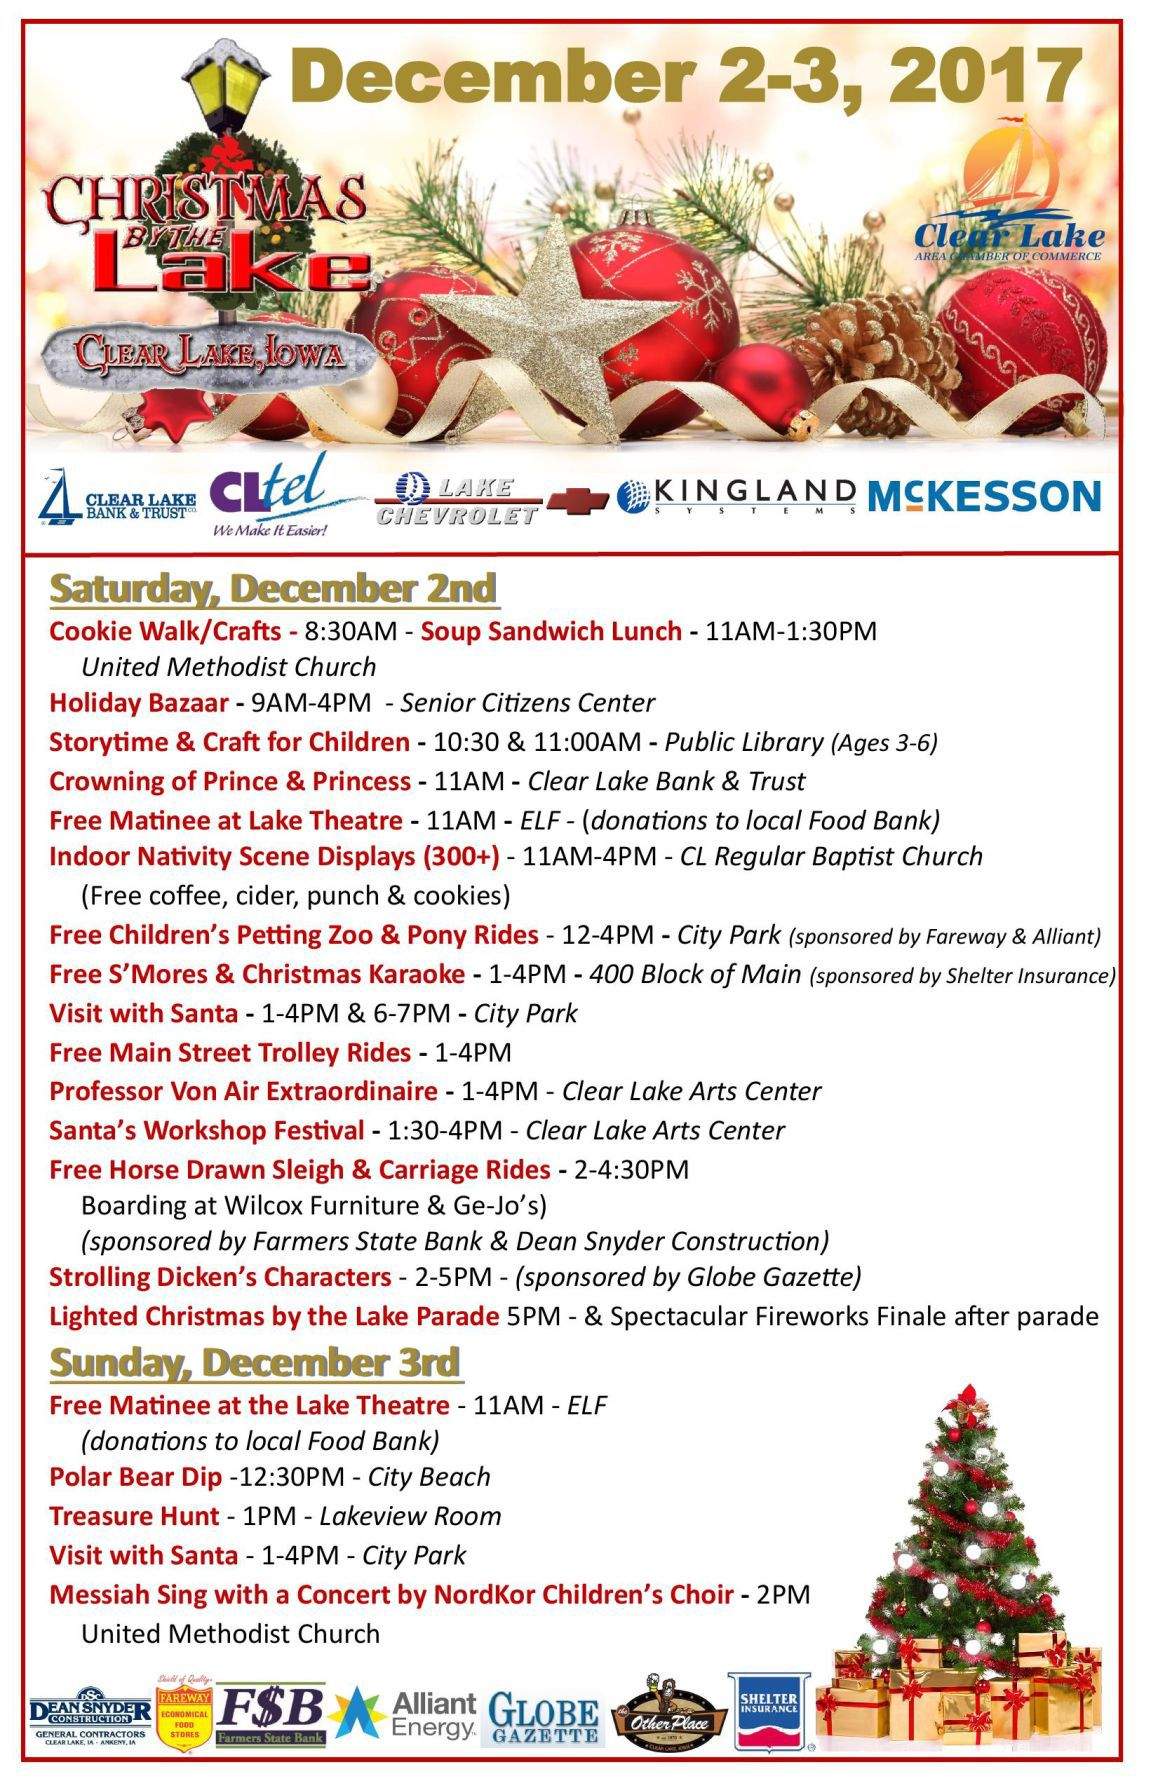 Christmas by the Lake 2017 Schedule